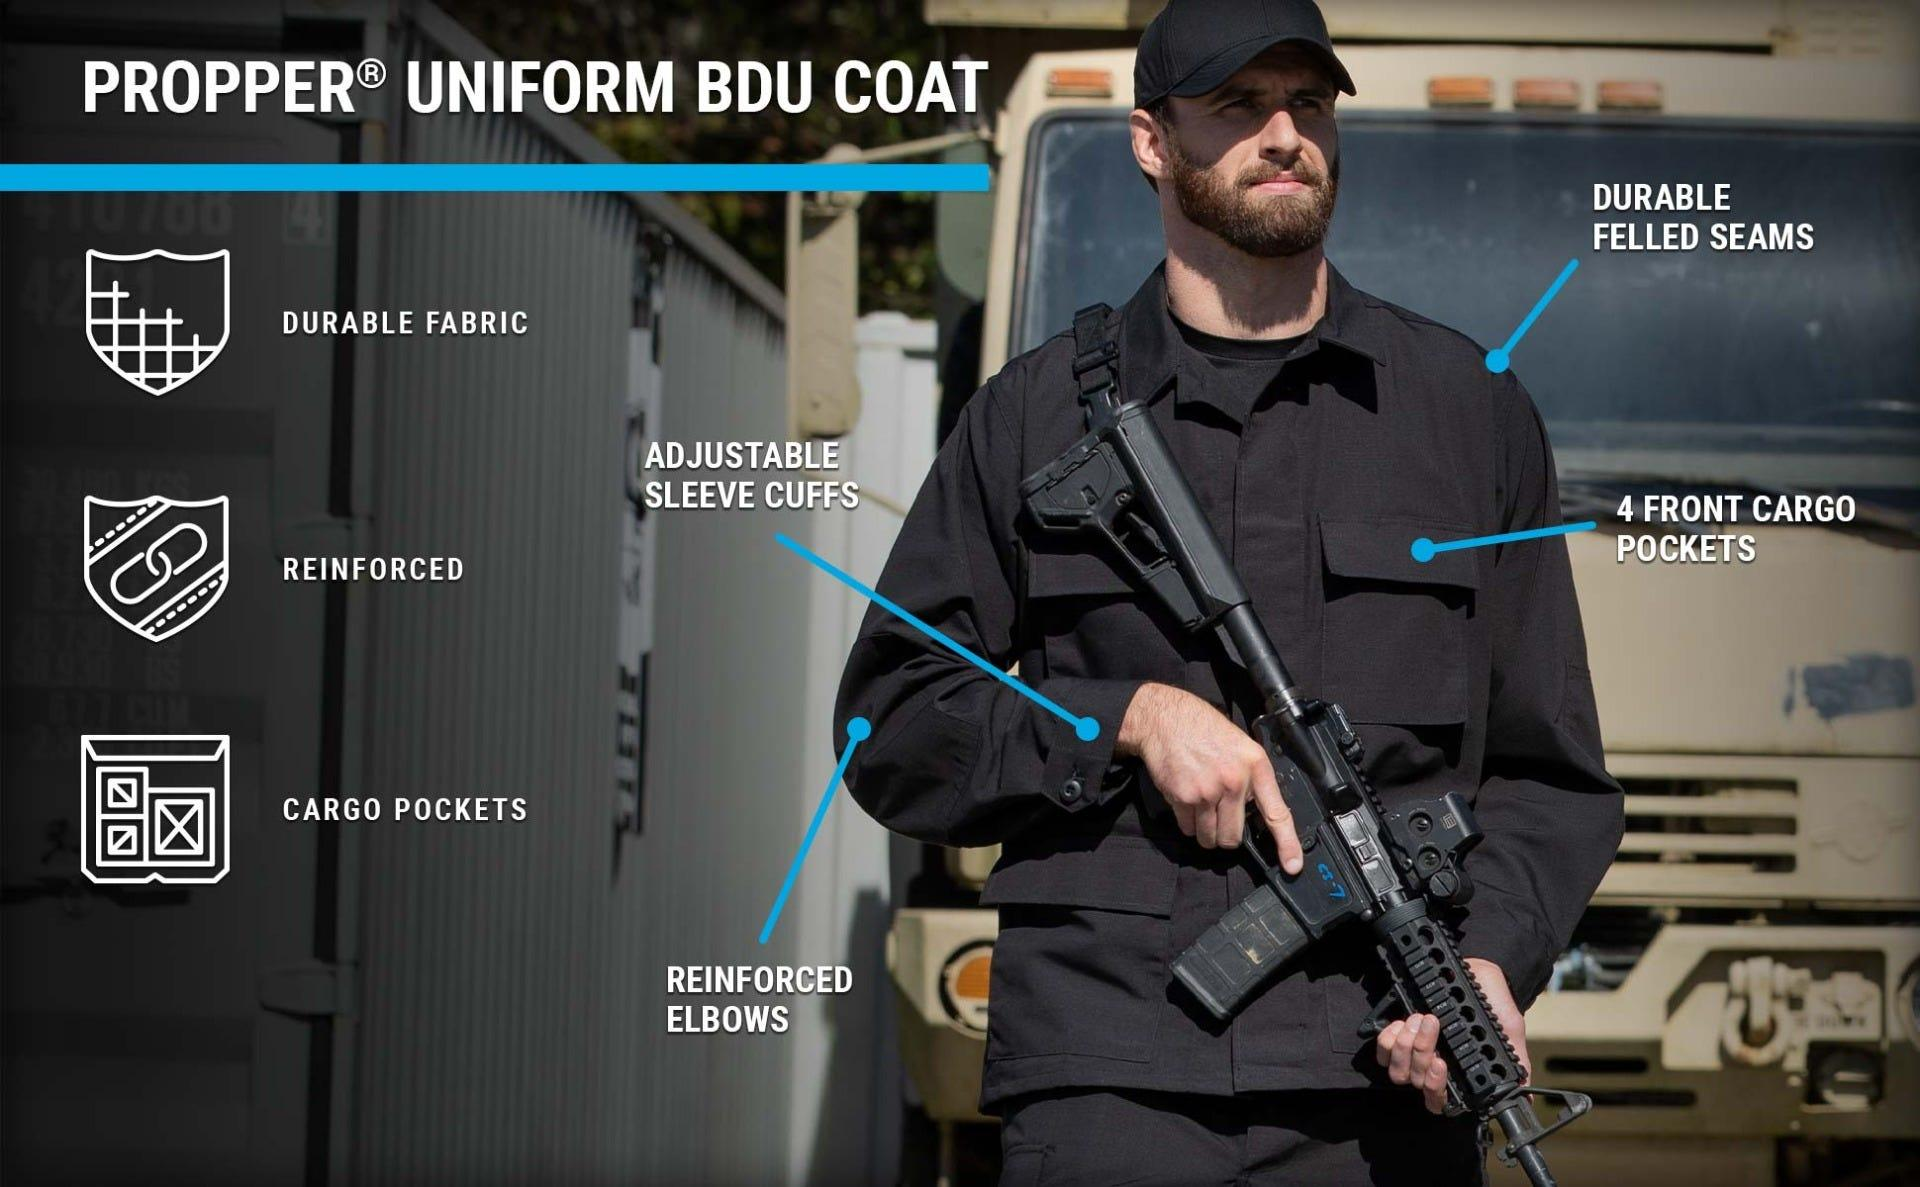 Man holding rifle in black BDU coat featuring 4 front cargo pockets & adjustable cuffs